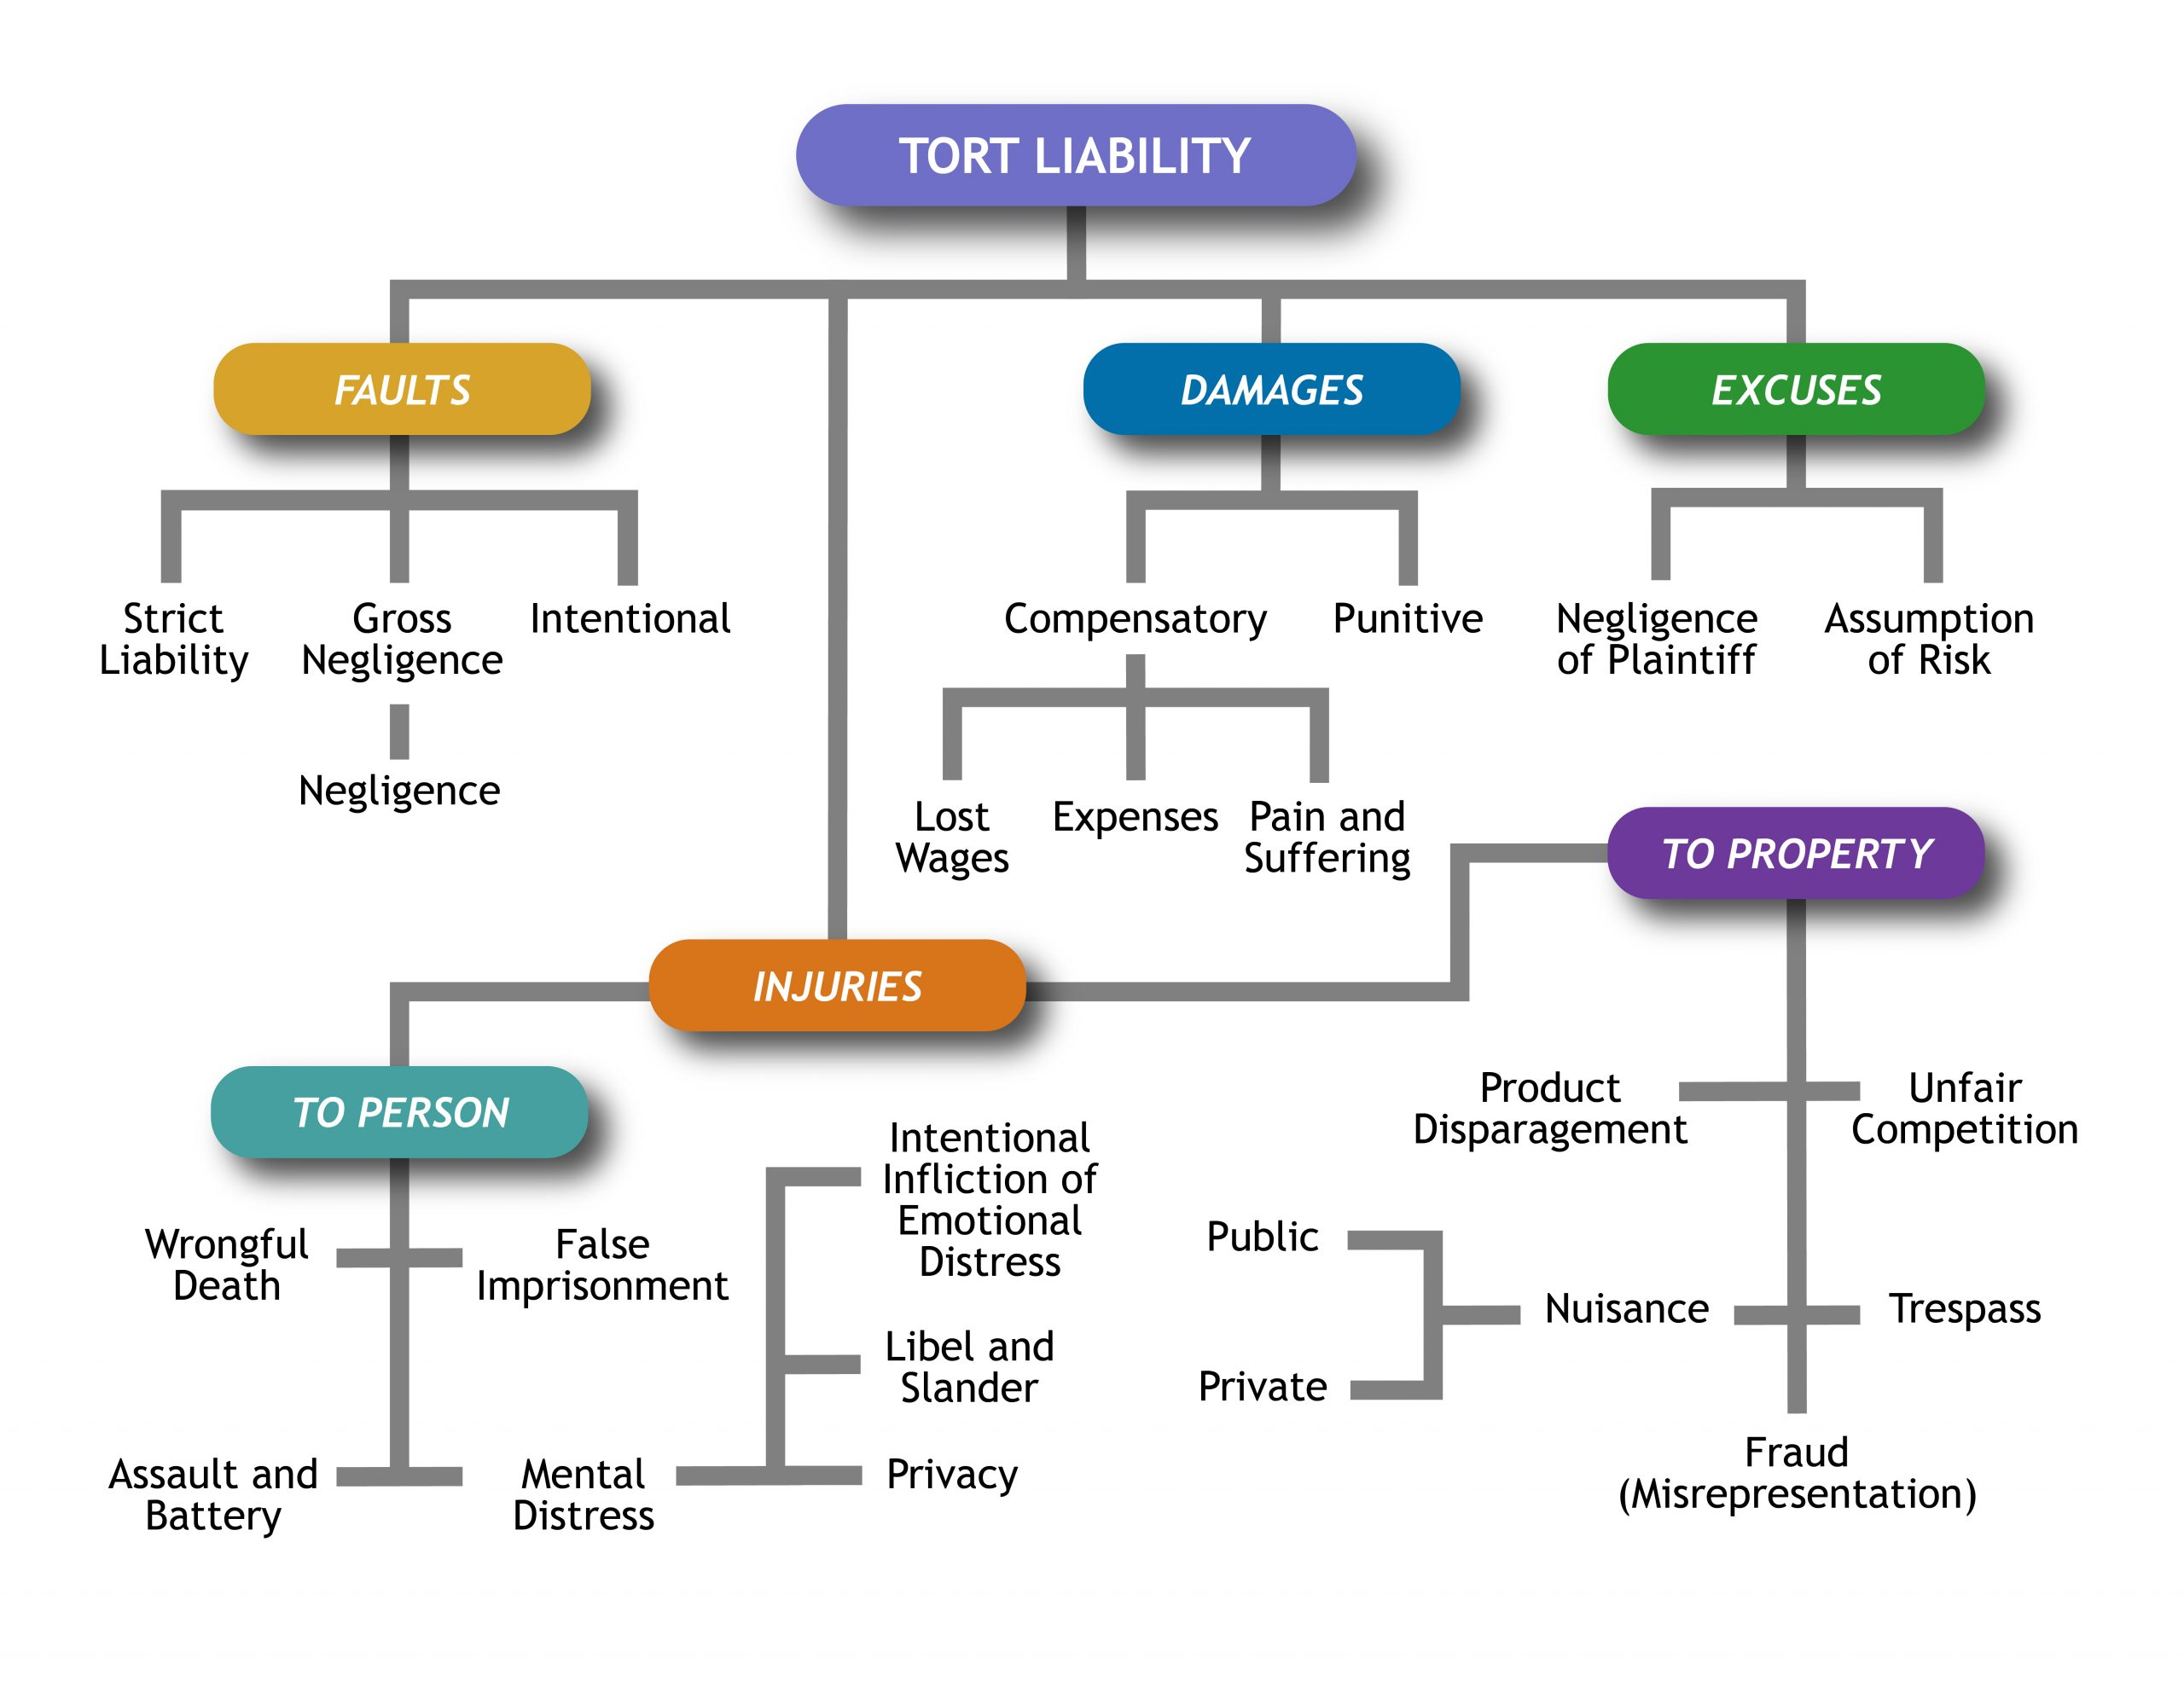 Flowchart showing categories of tort liability